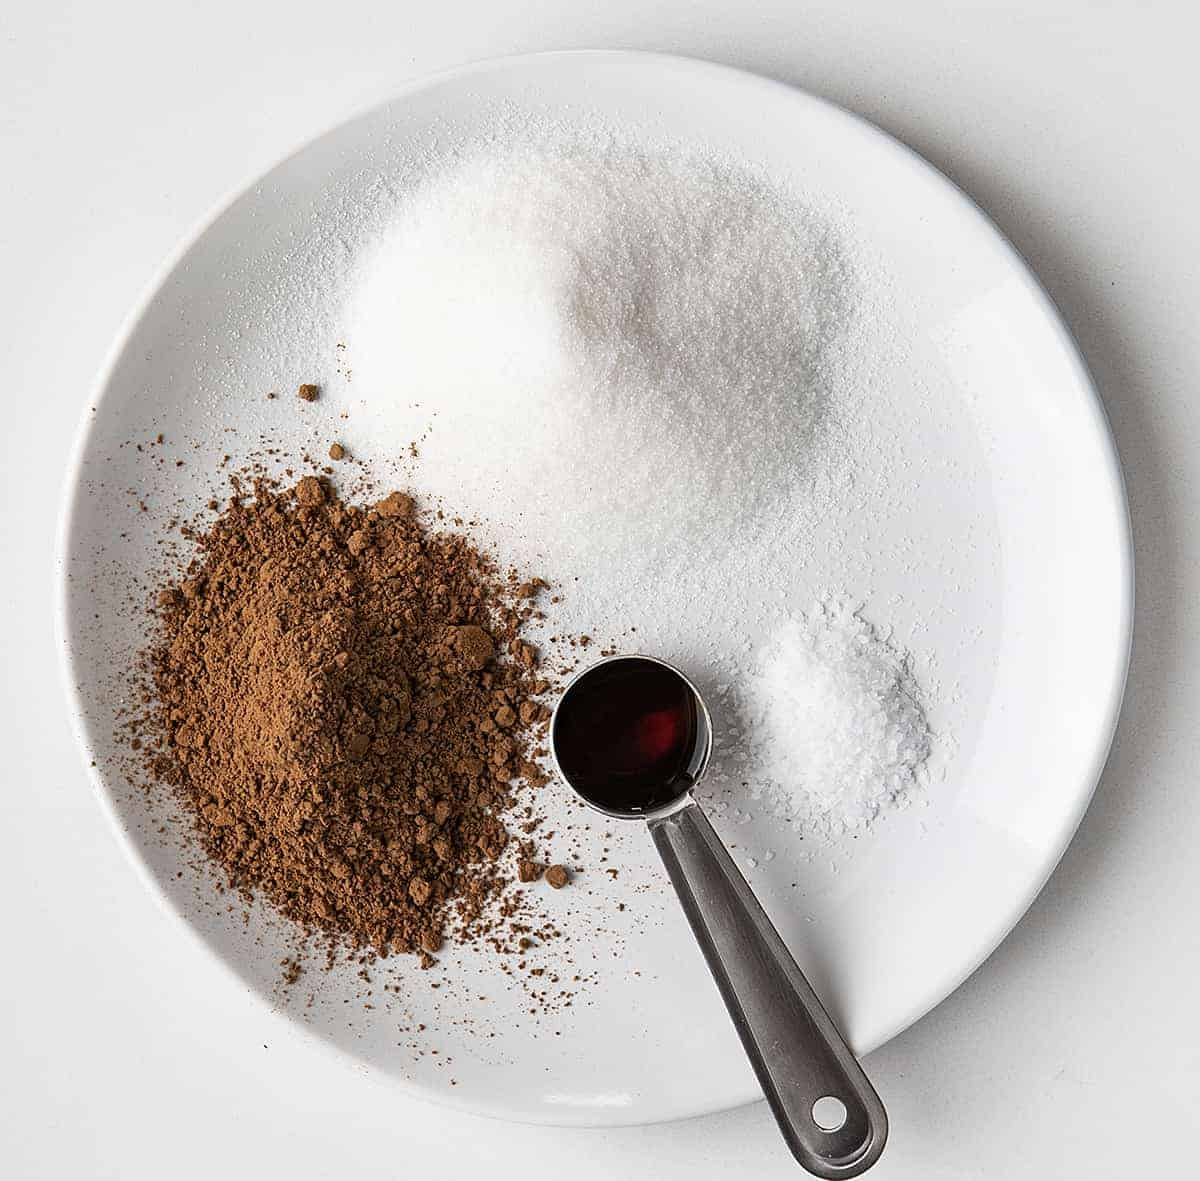 Raw Ingredients for Homemade Chocolate Fudge Sauce on White Plate